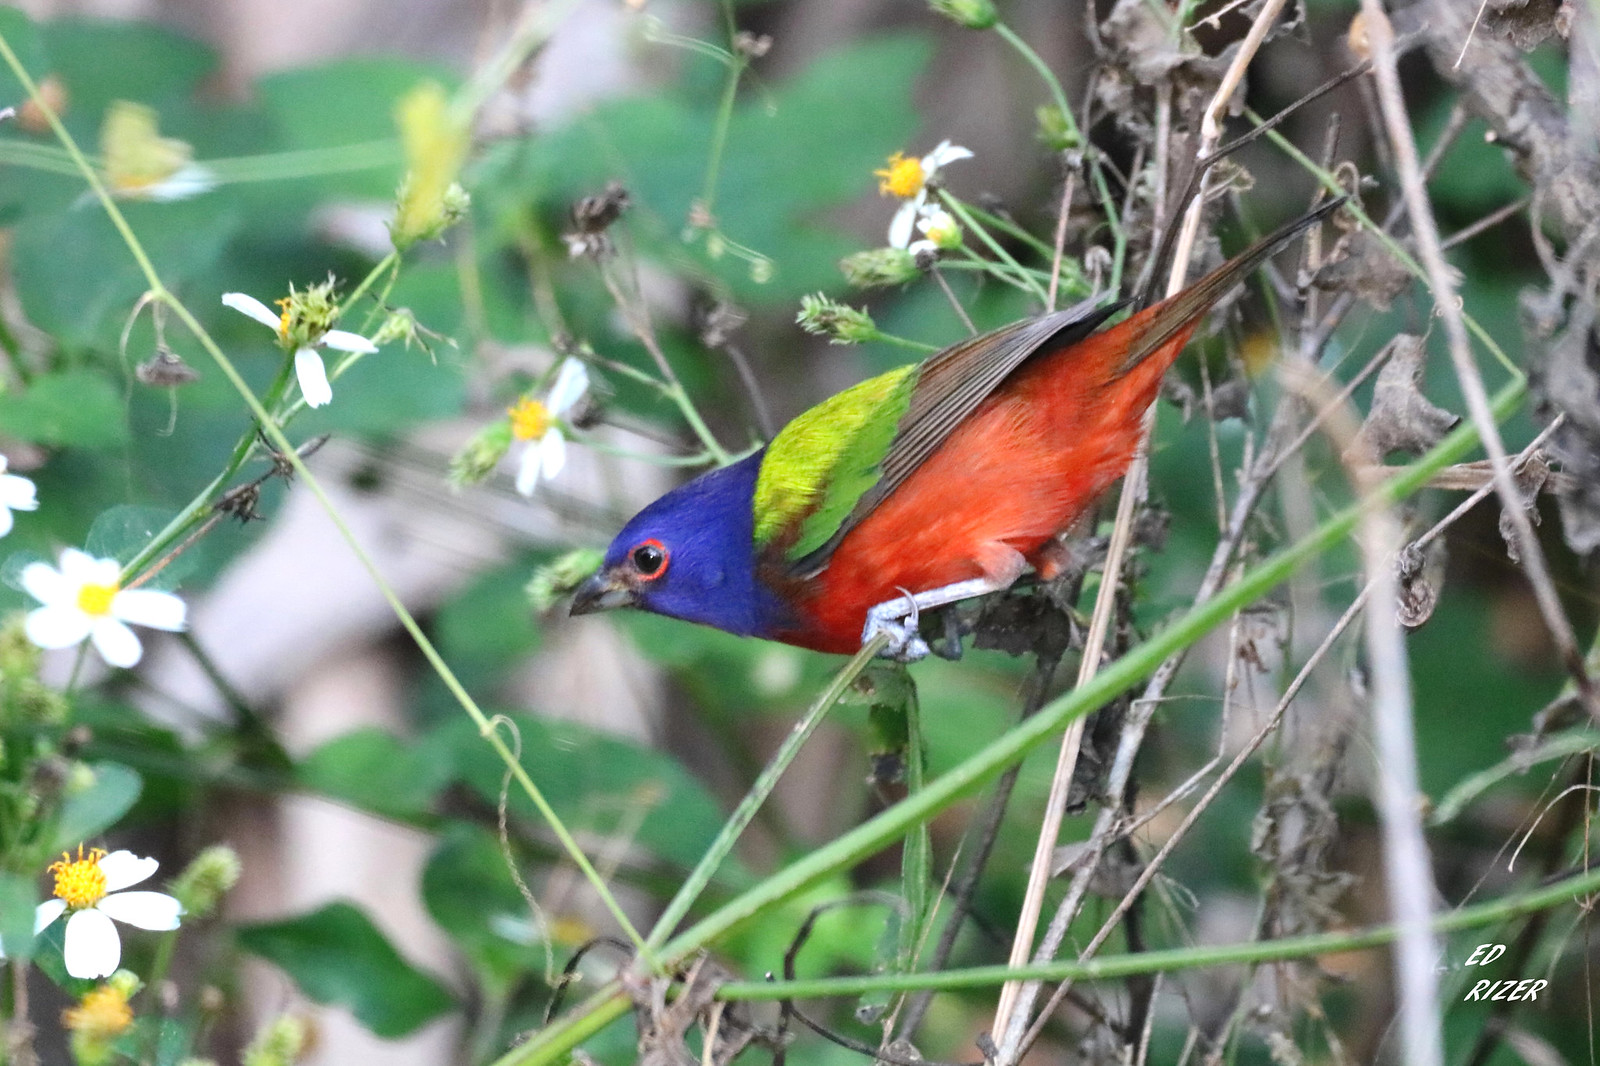 Hard to compare with the beauty of Pierre the PAINTED BUNTING, Lakeland, Florida